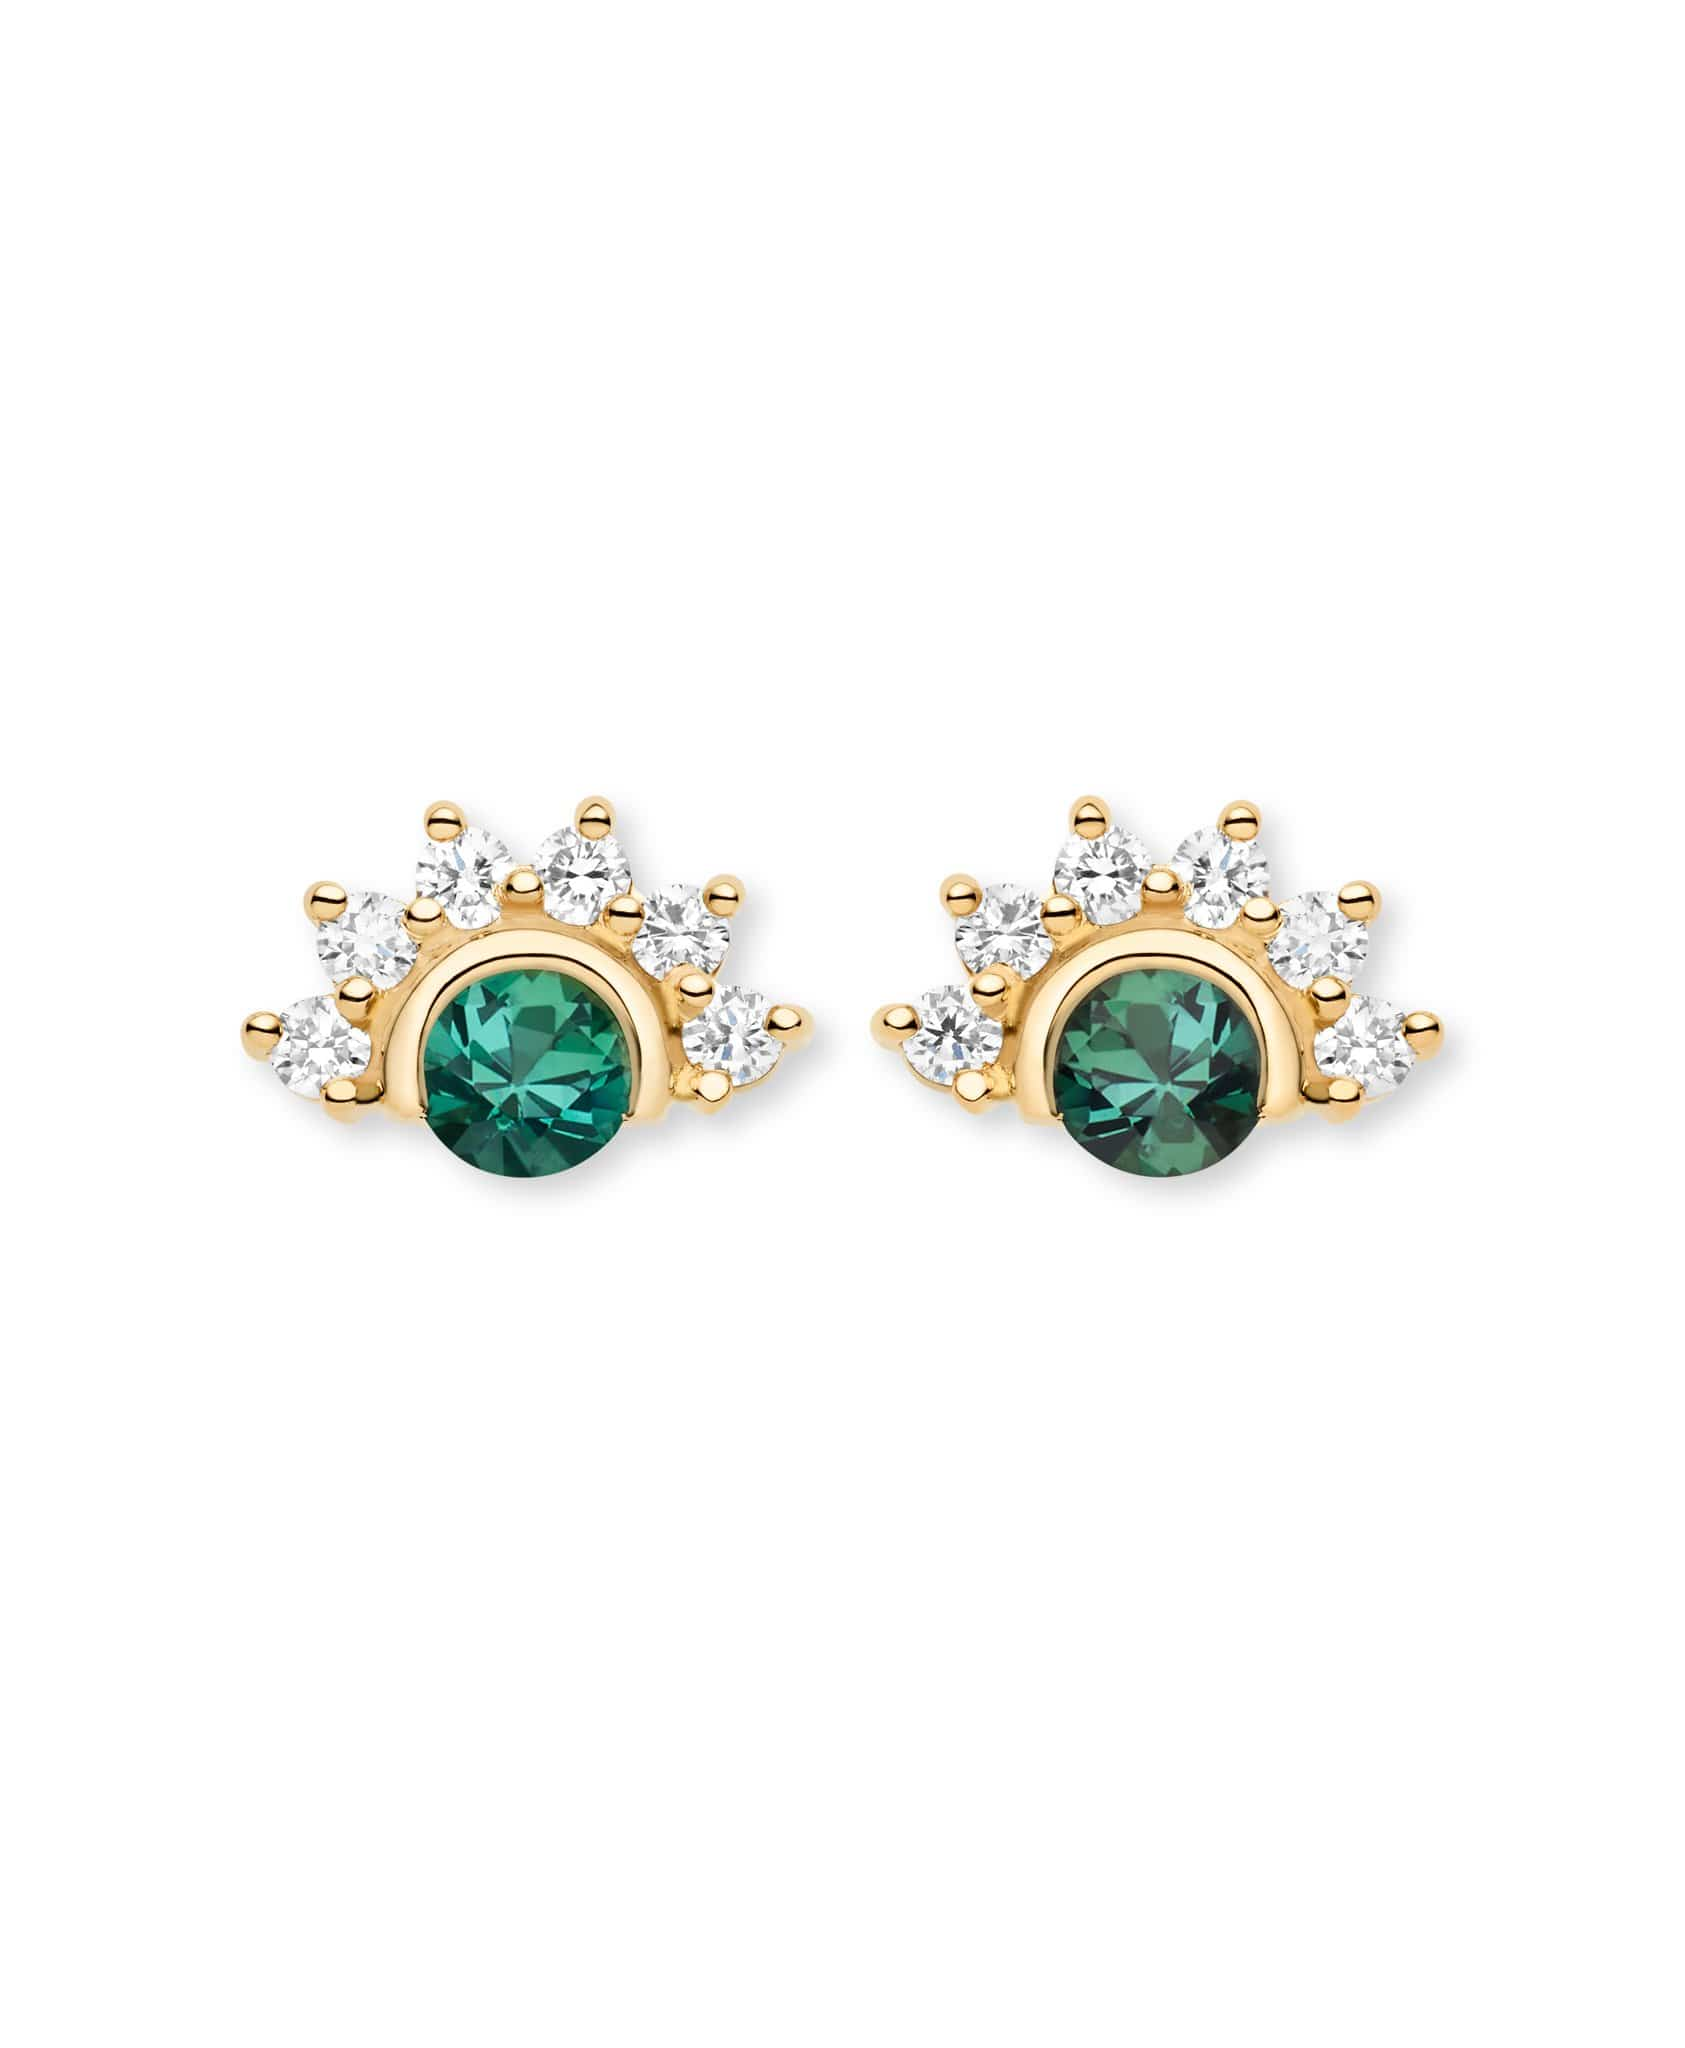 Green Tourmaline Studs: Discover Luxury Fine Jewelry | Nouvel Heritage || Yellow Gold